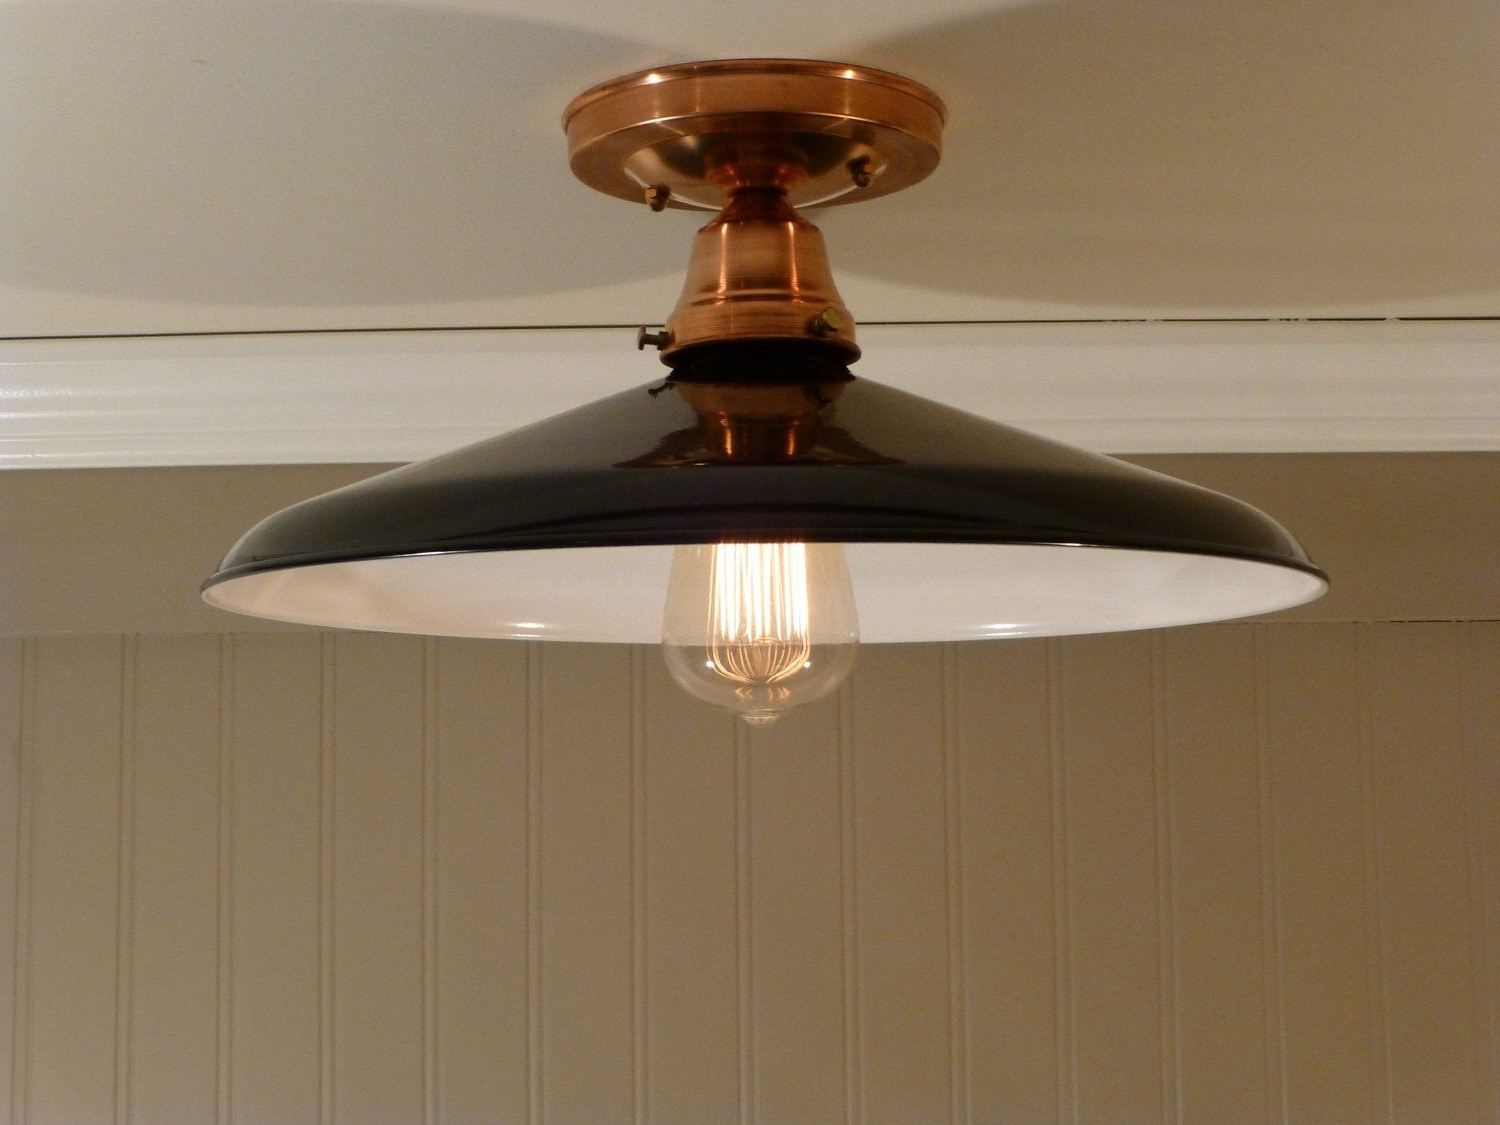 Dining Room Light – Low Ceiling For The Home Pinterest Best Intended For Most Recent Low Ceiling Chandeliers (View 7 of 20)